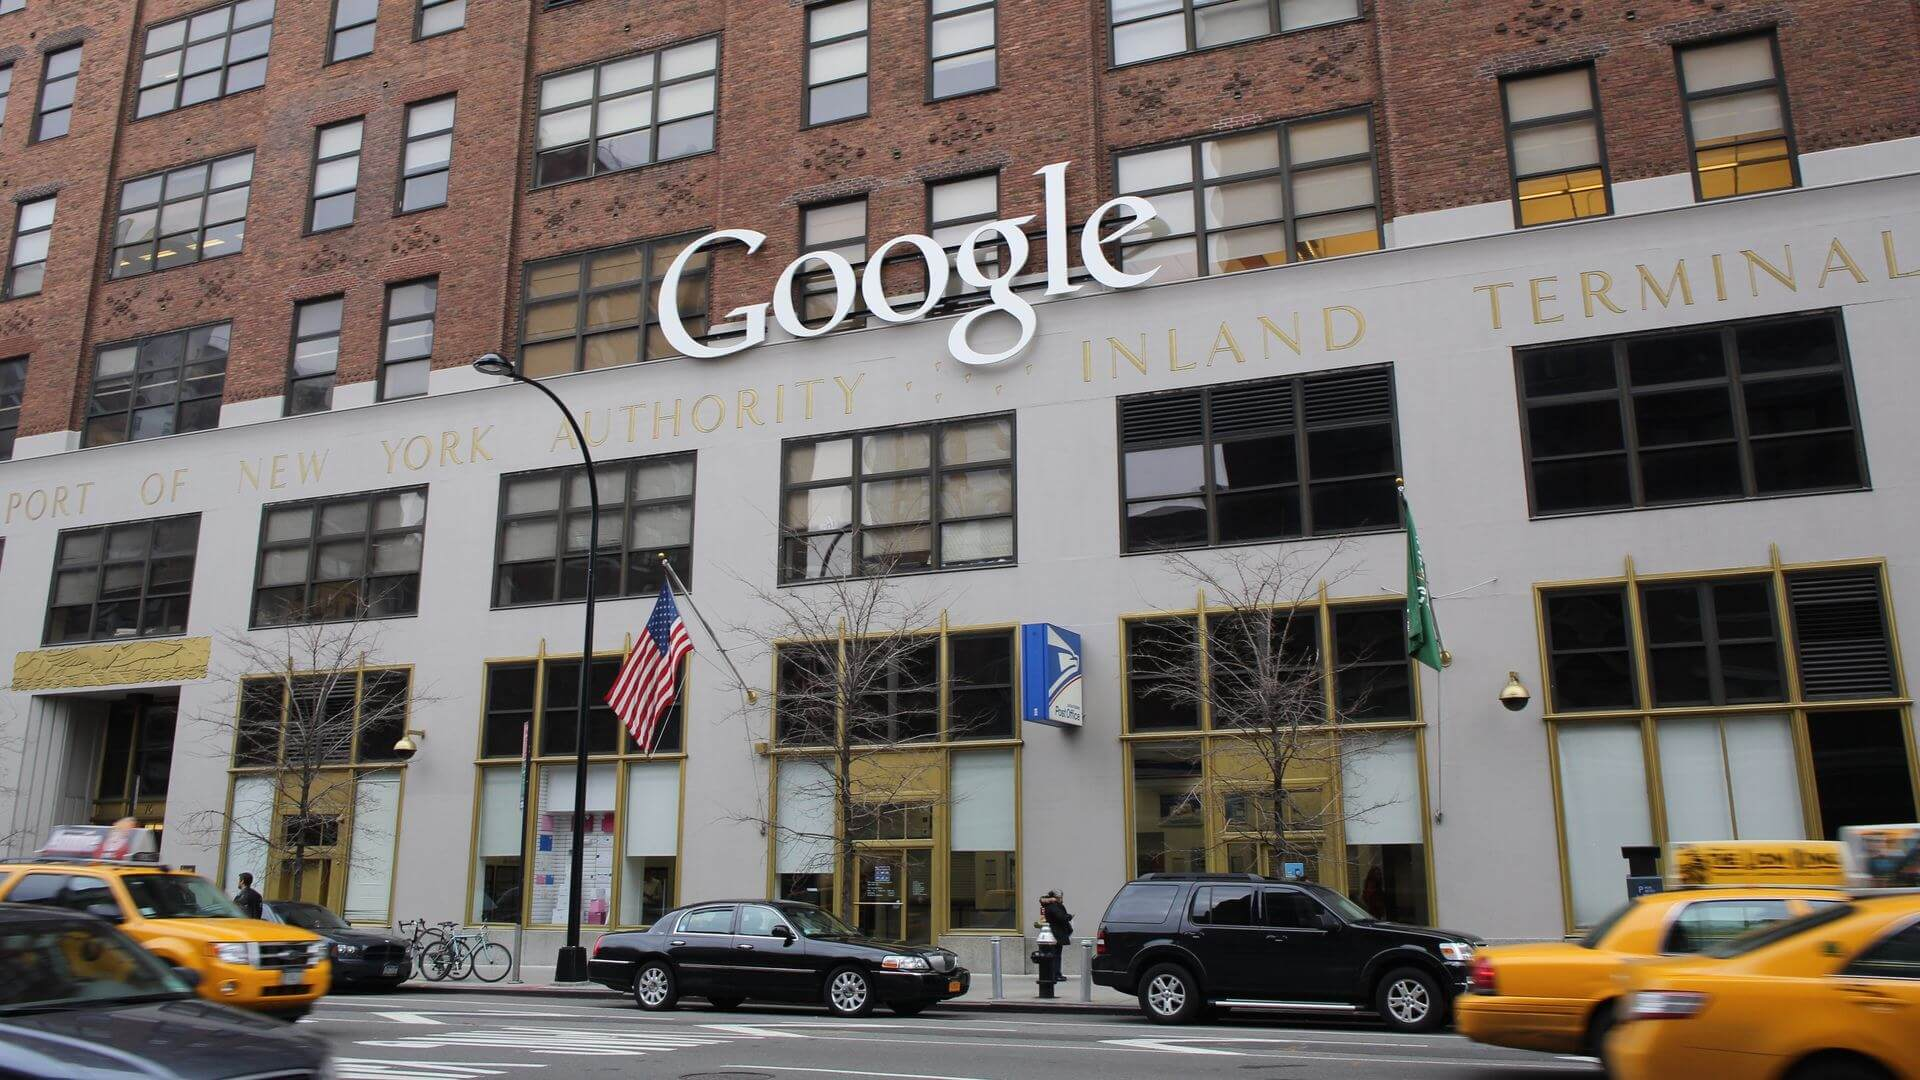 Google to invest $1 billion in New York City campus